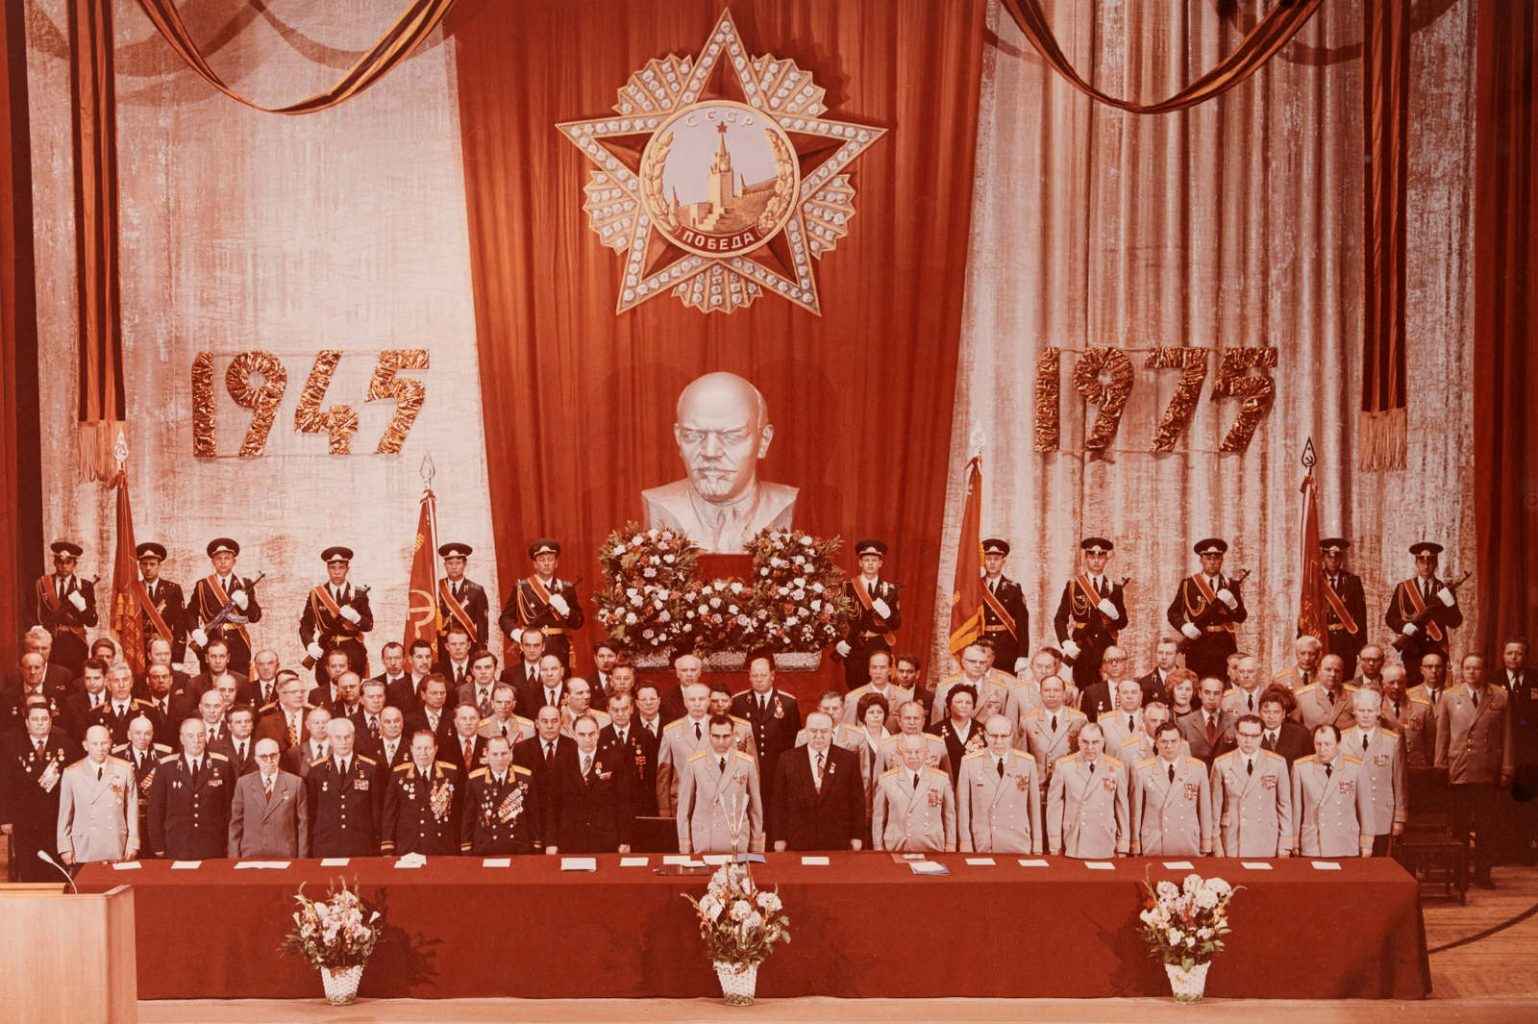 Original photograph of the commemoration of the 30th anniversary (1945-1975) of the victory in the USSR (1975) with Soviet dignitaries, including Yuri STOROZHEV (second row in the back, 3rd person from the right) in KGB General's uniform, to whom this photograph belonged.